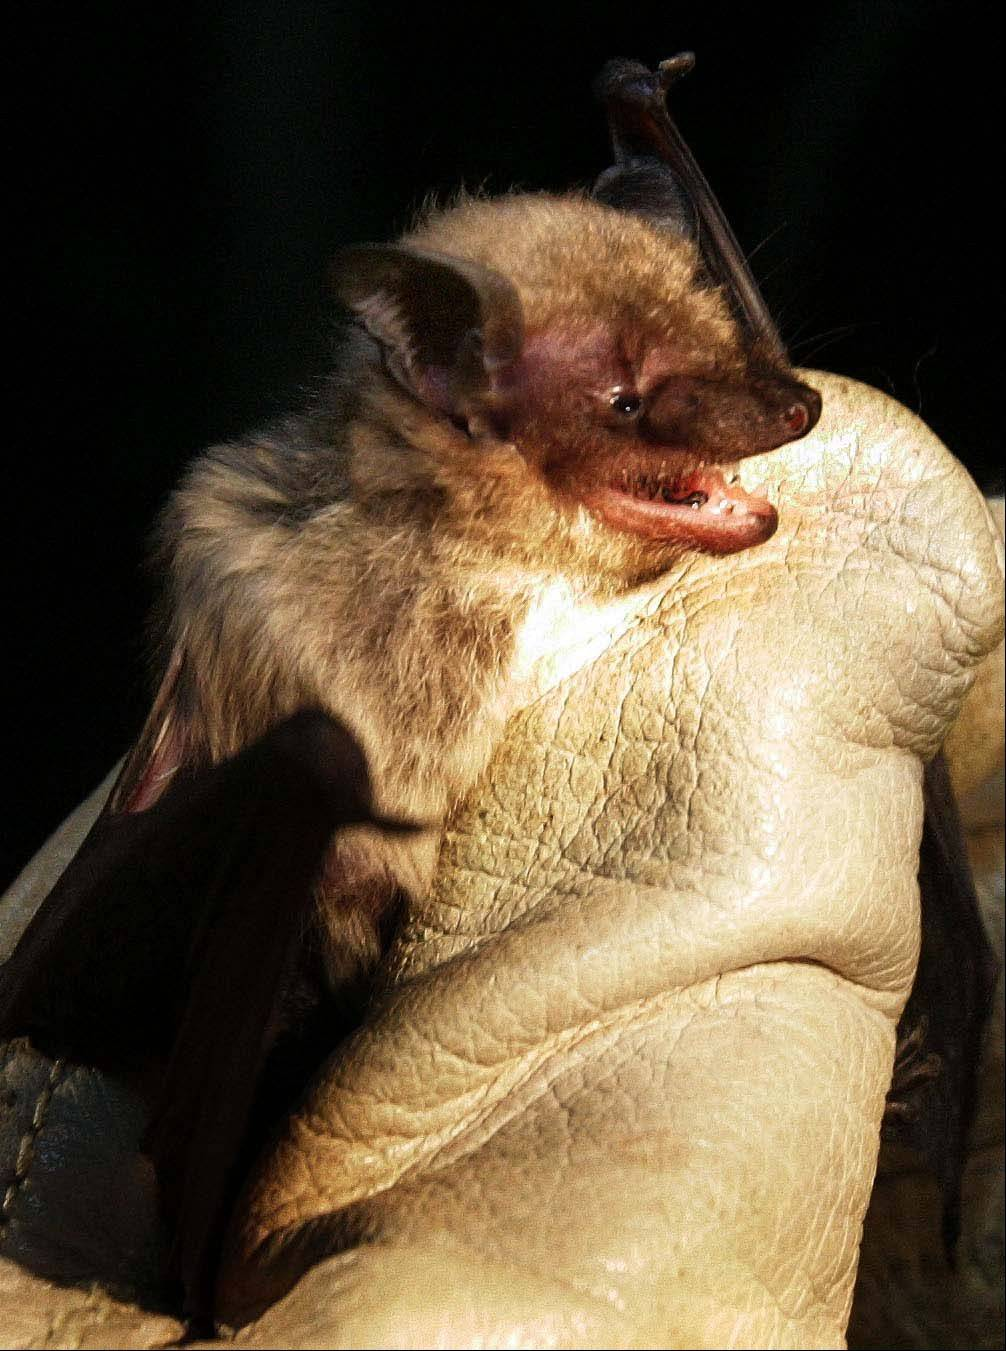 A brown bat.